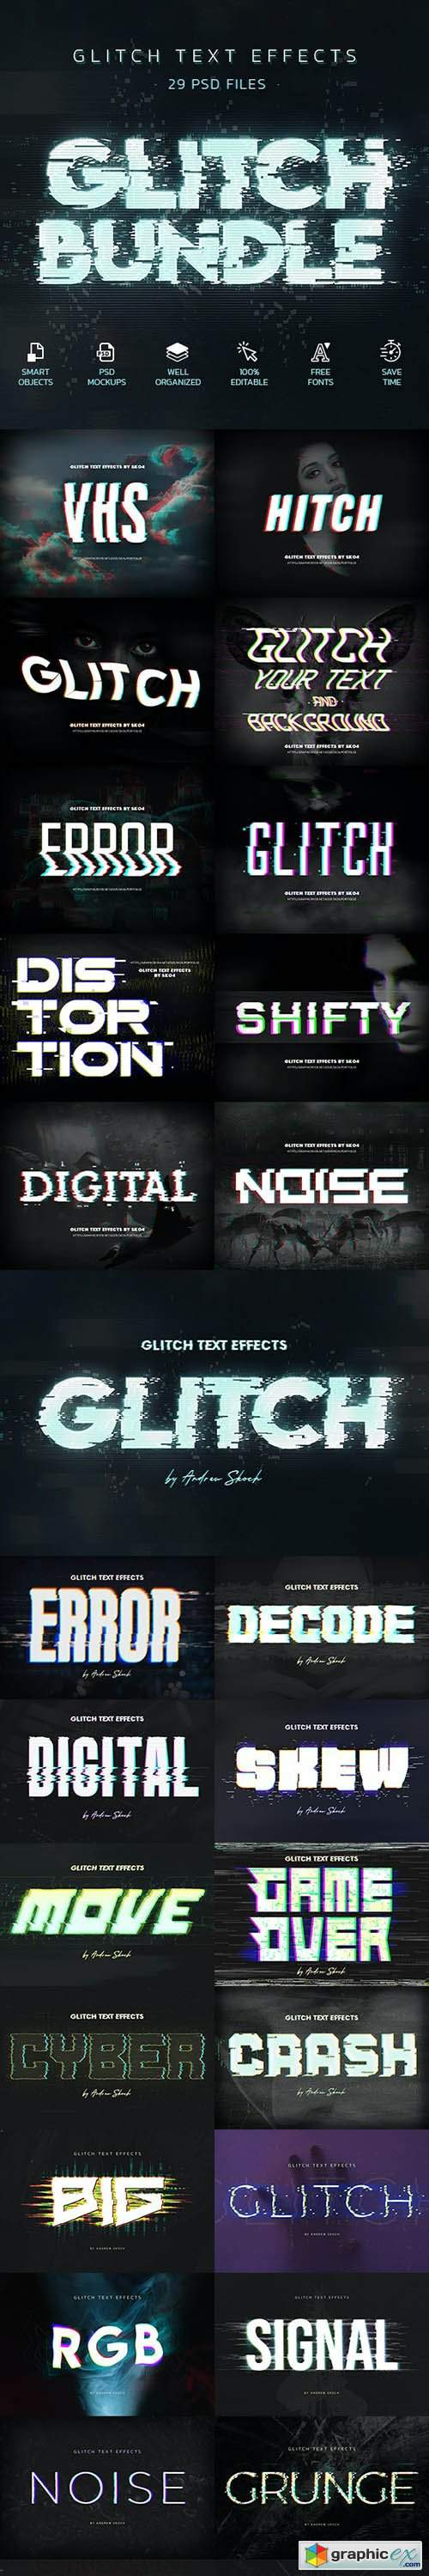 Glitch Effects Bundle